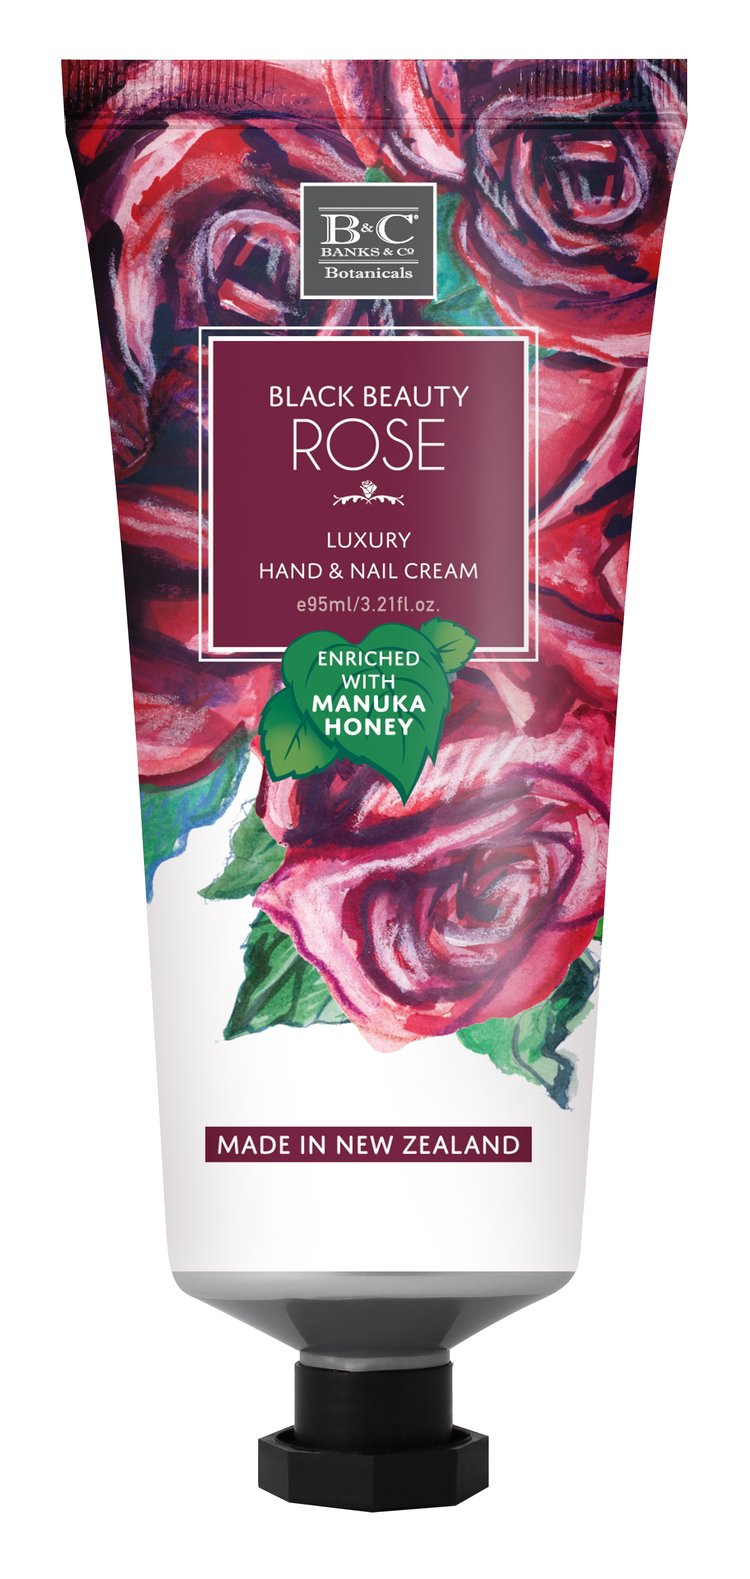 Black Beauty Rose Hand & Nail Cream - Kiwi Collections